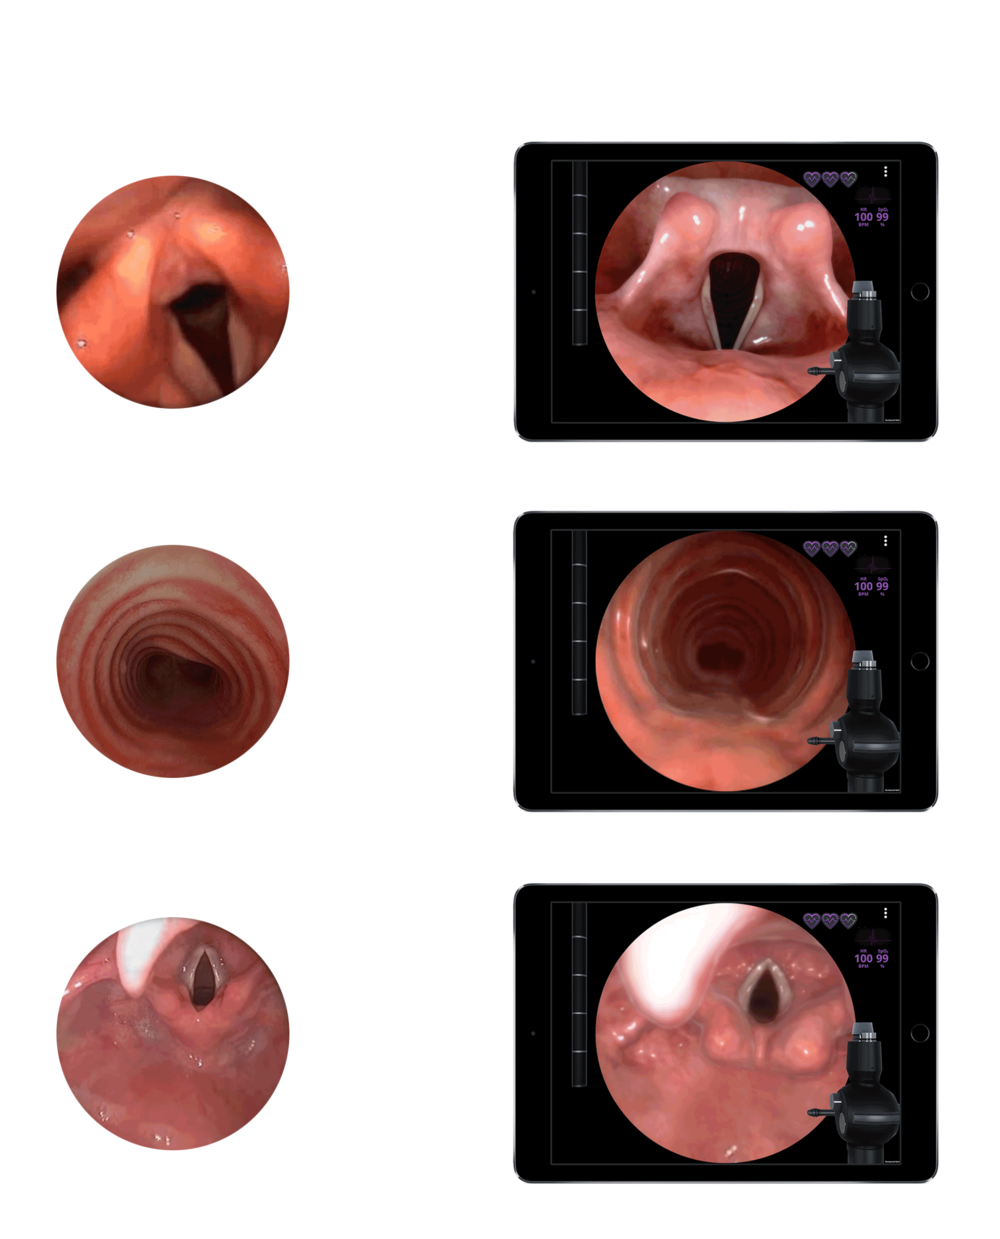 airway-comparison-image.png